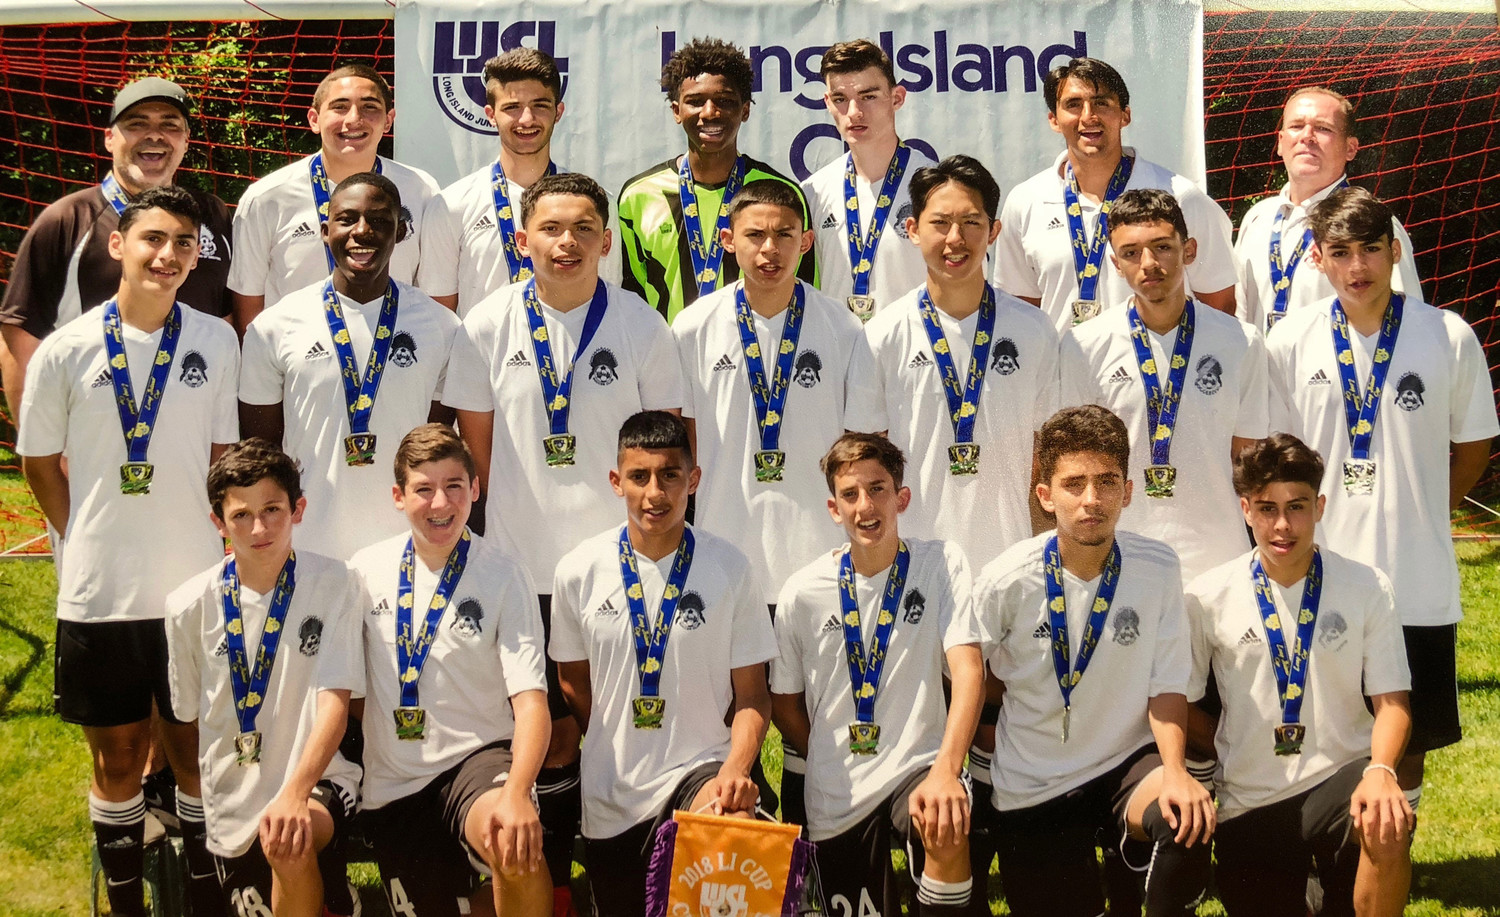 The 15-and-under Seminoles won the Long Island Junior Soccer League's Long Island Cup.